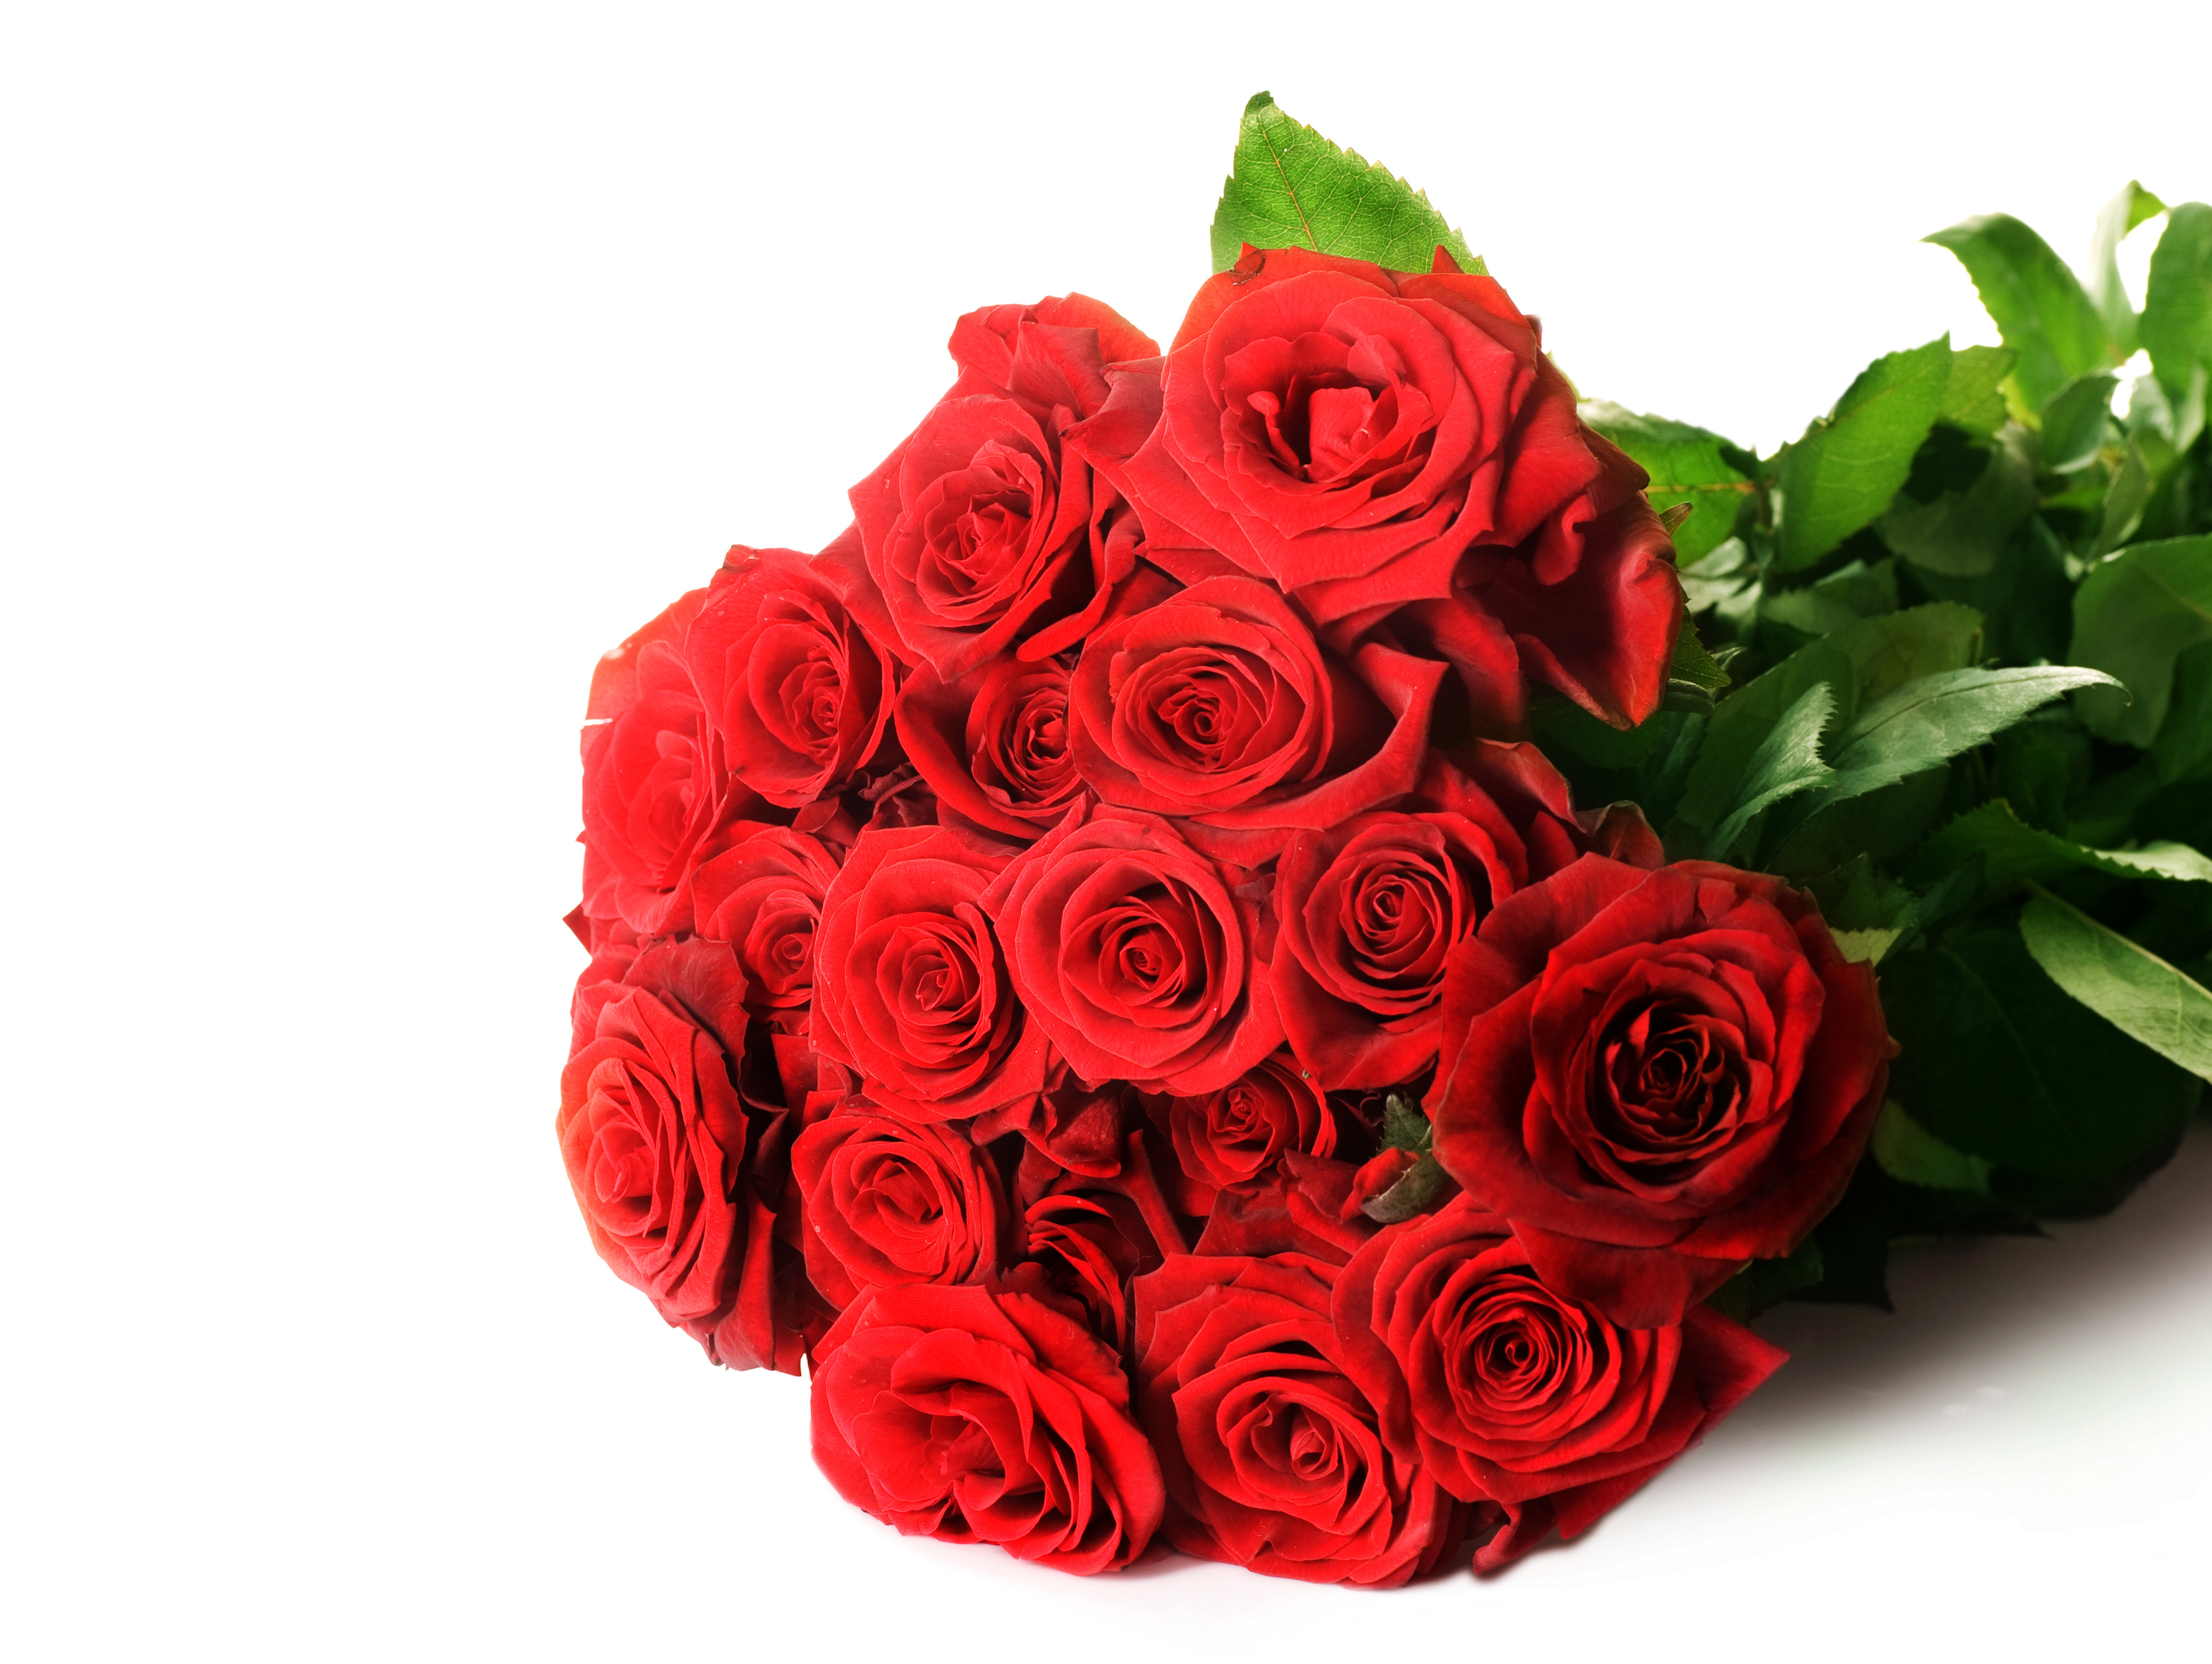 Bouquet Of Roses PNG HD - 142846